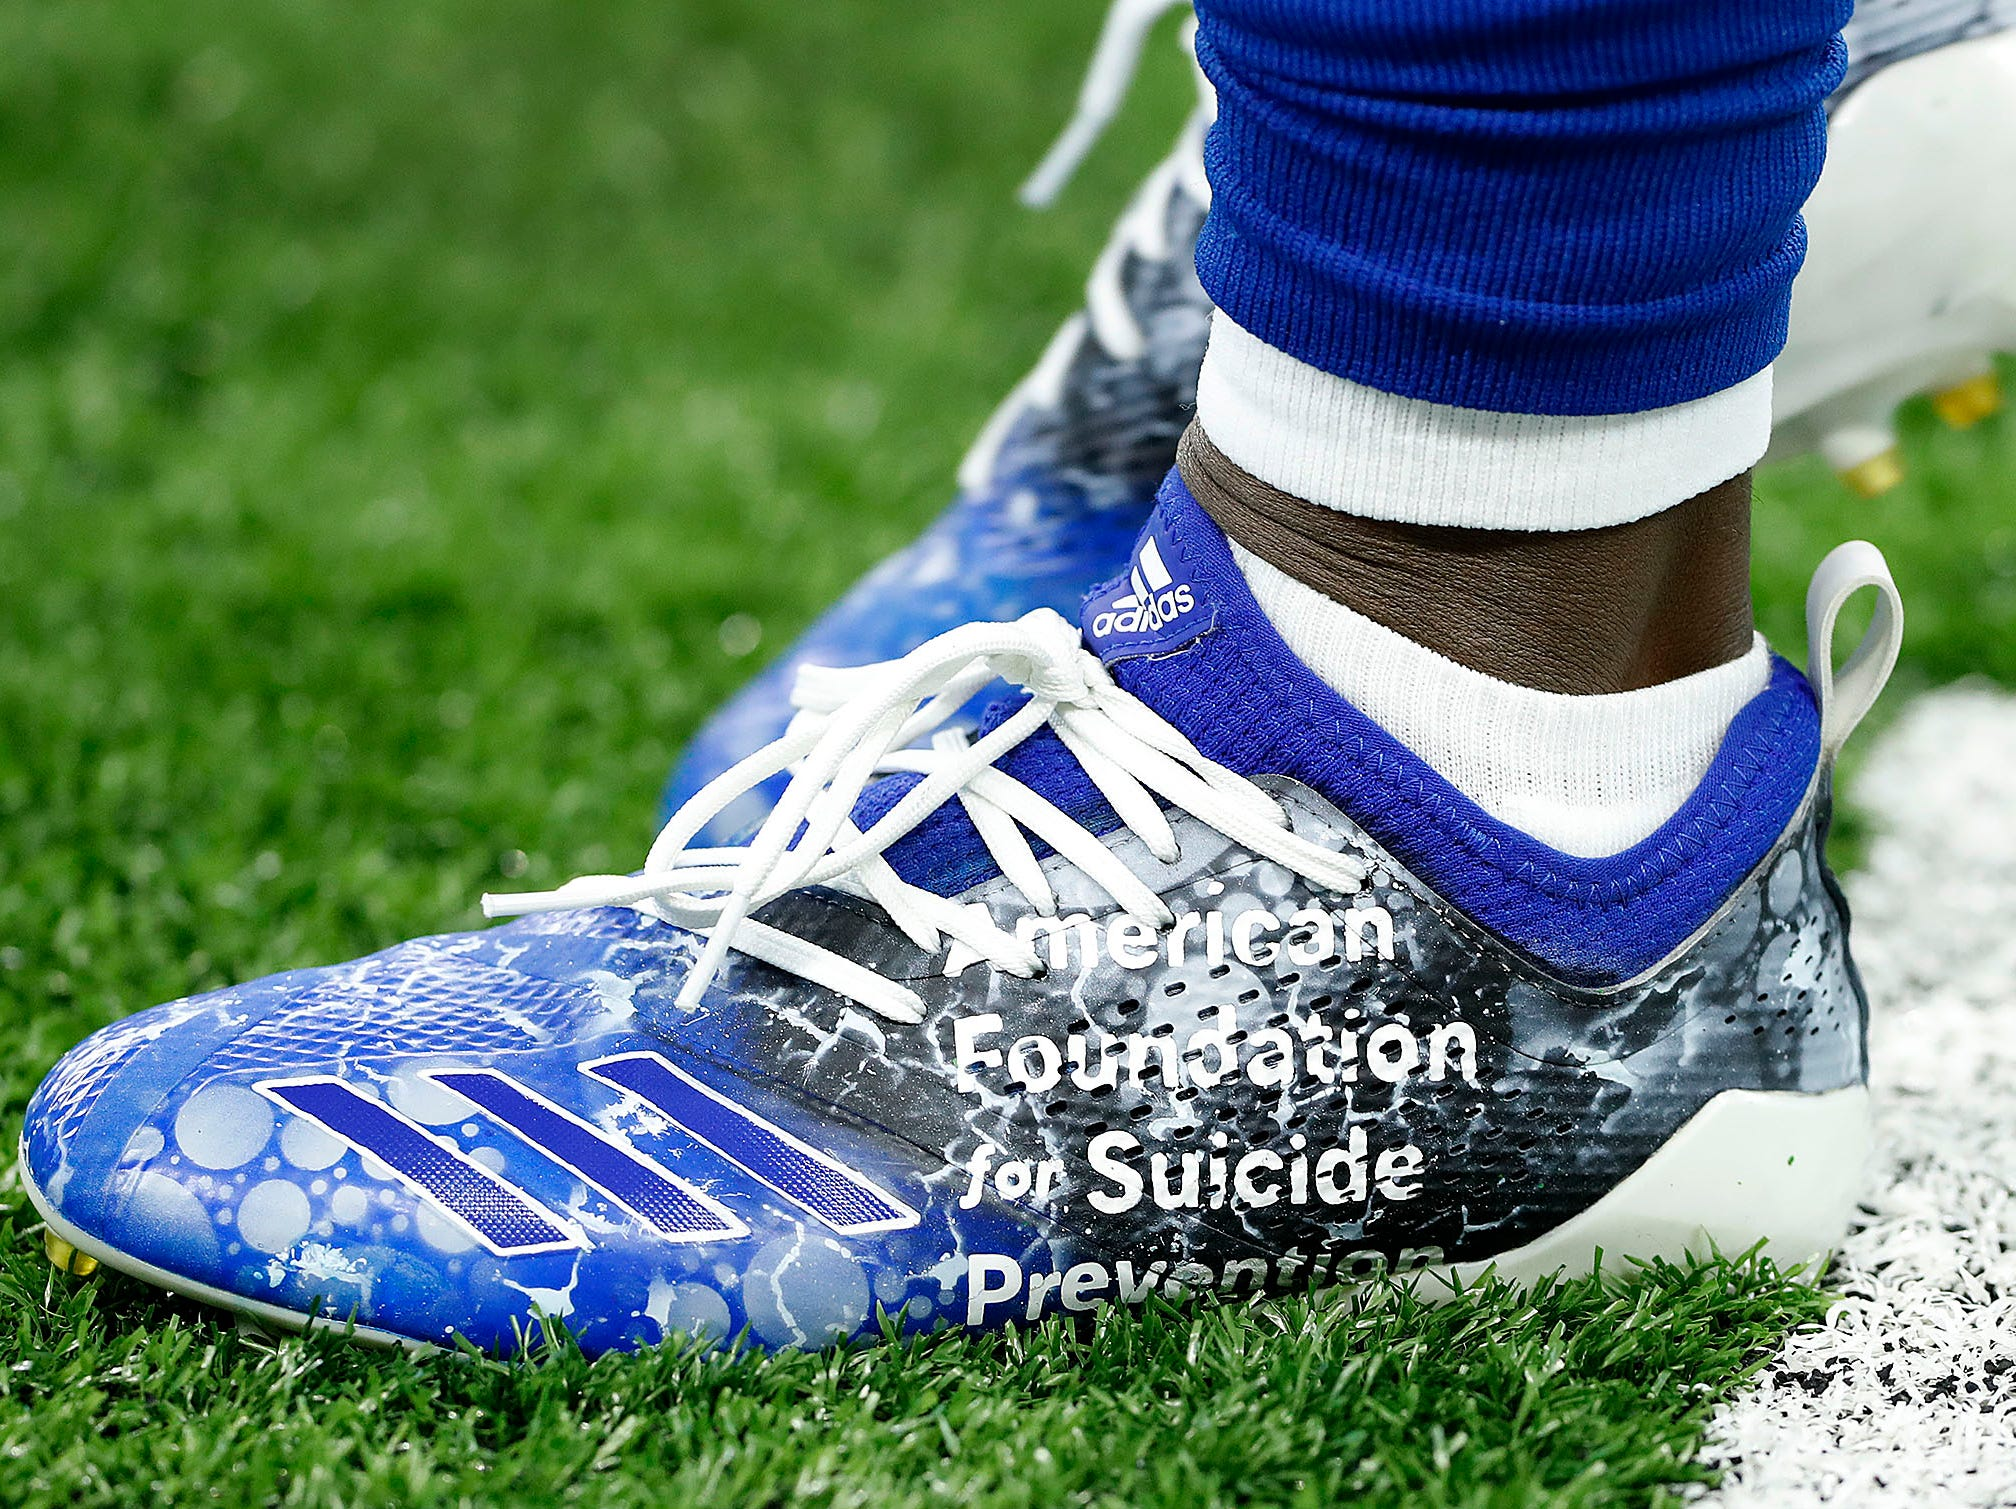 Indianapolis Colts wide receiver Chester Rogers (80) and his My Cleats, My Cause before the start of their game against the Dallas Cowboys at Lucas Oil Stadium on Sunday, Dec. 16, 2018.